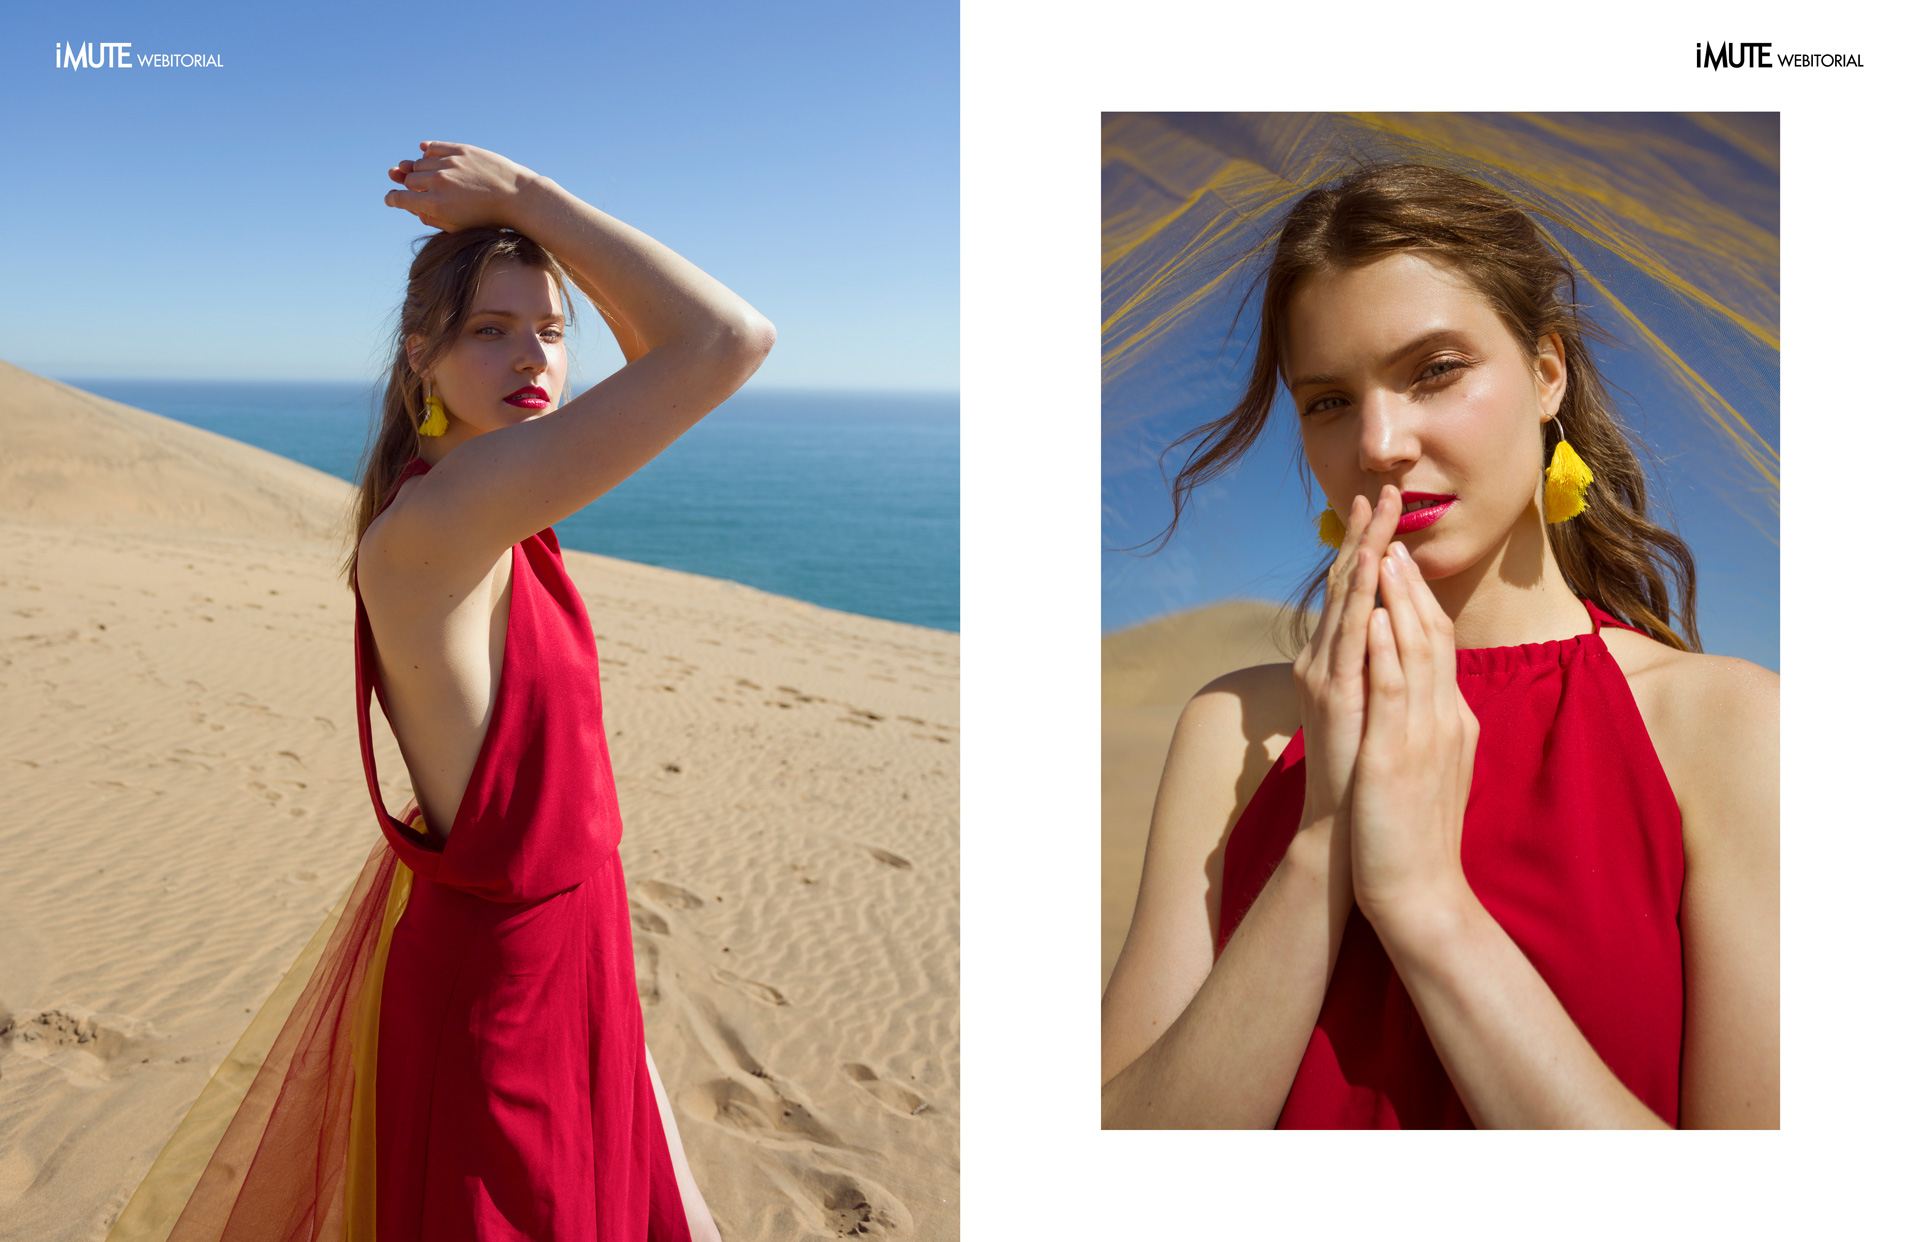 High by the beach webitorial for iMute Magazine Photographer|Alina Oteiza Model| Anna Gryzlova @We love models Chile Stylist|Diego Isaac Makeup & Hair|Estefany Contreras Photo Assistant|Erik Miranda Clothes|Youth Revolt Earrings|DUO